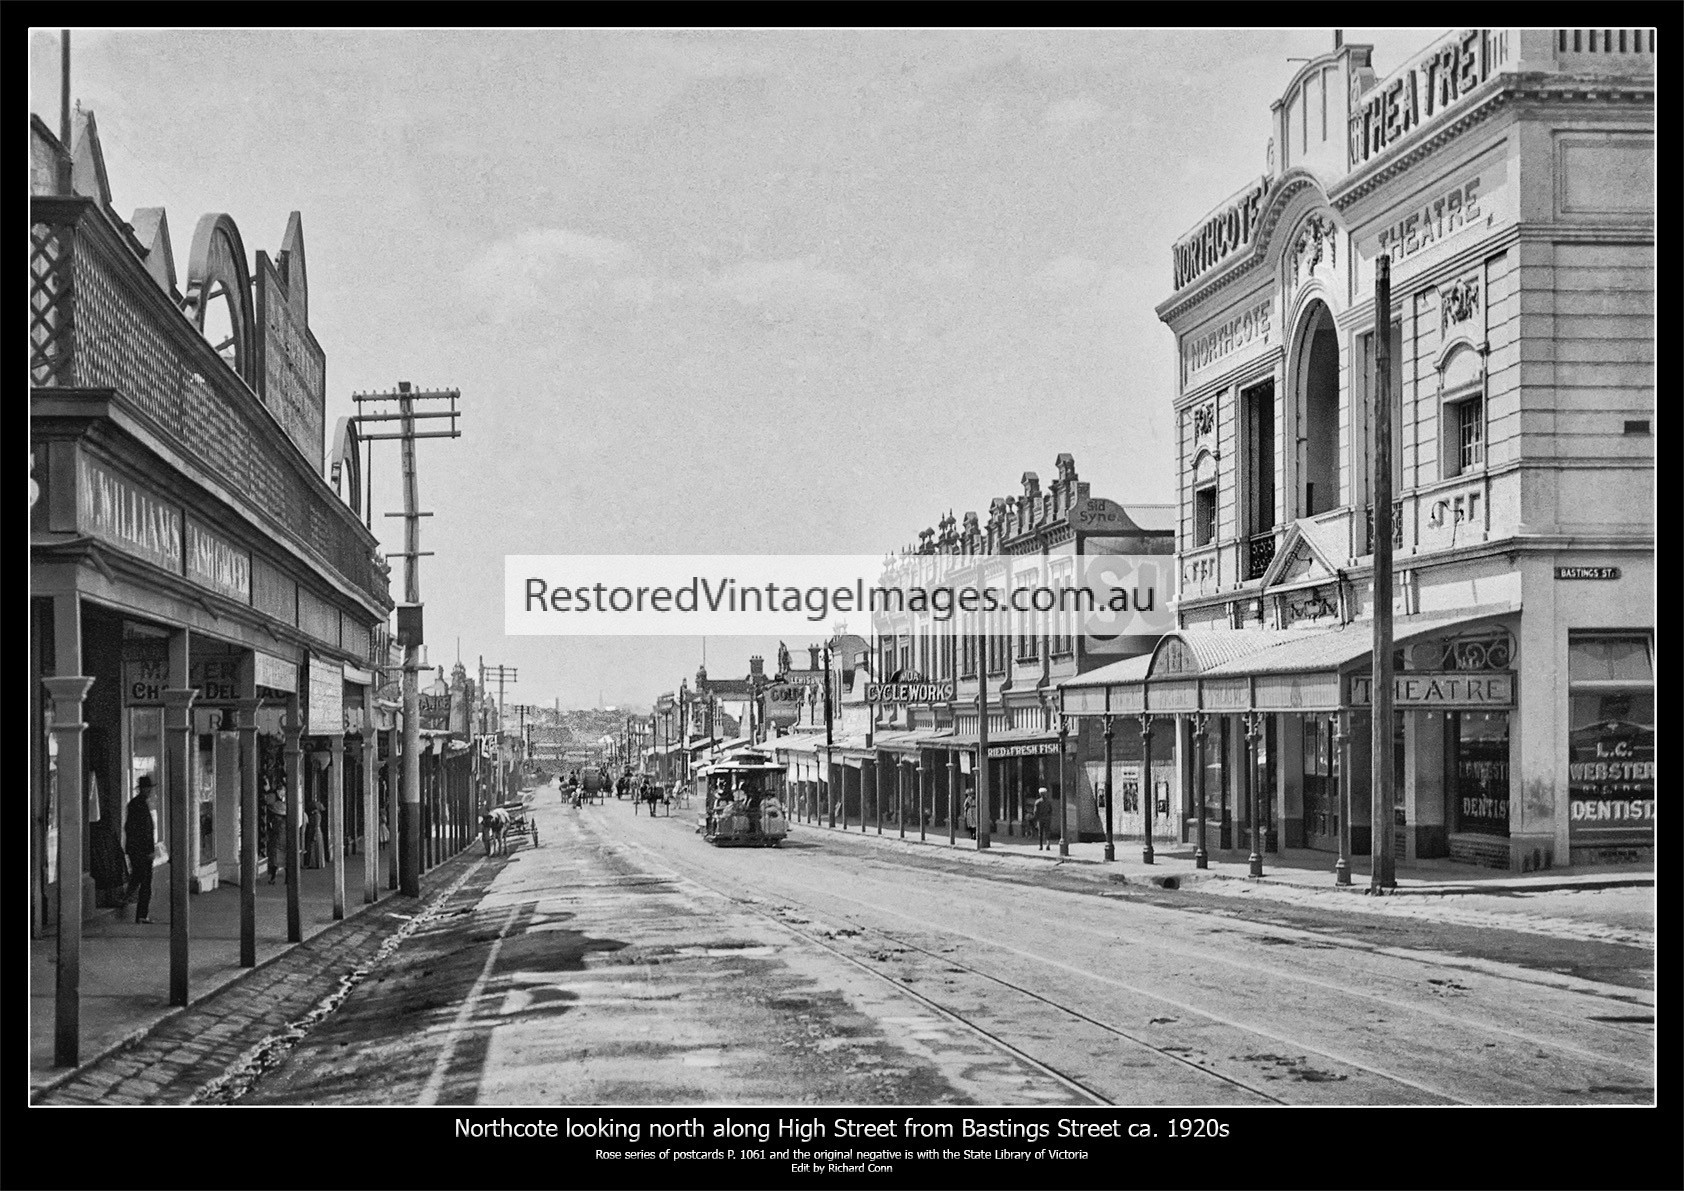 Northcote Looking North On High Street From Bastings Street Ca. 1920s